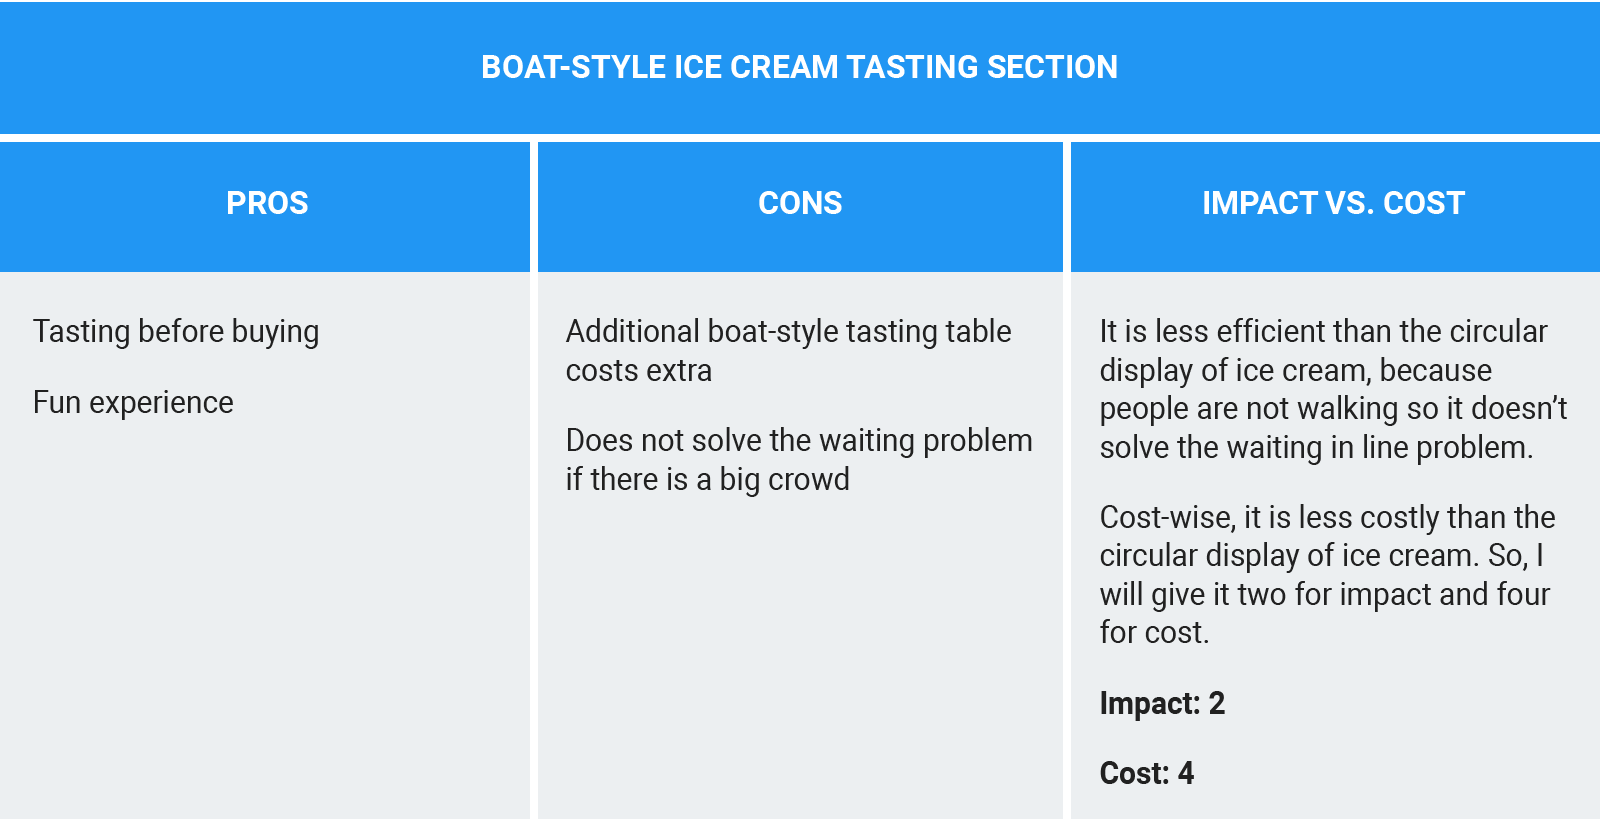 Tracking the pros and cons for the Boat-style Ice cream Tasting Section idea and evaluating how the idea scores relative to impact vs. cost